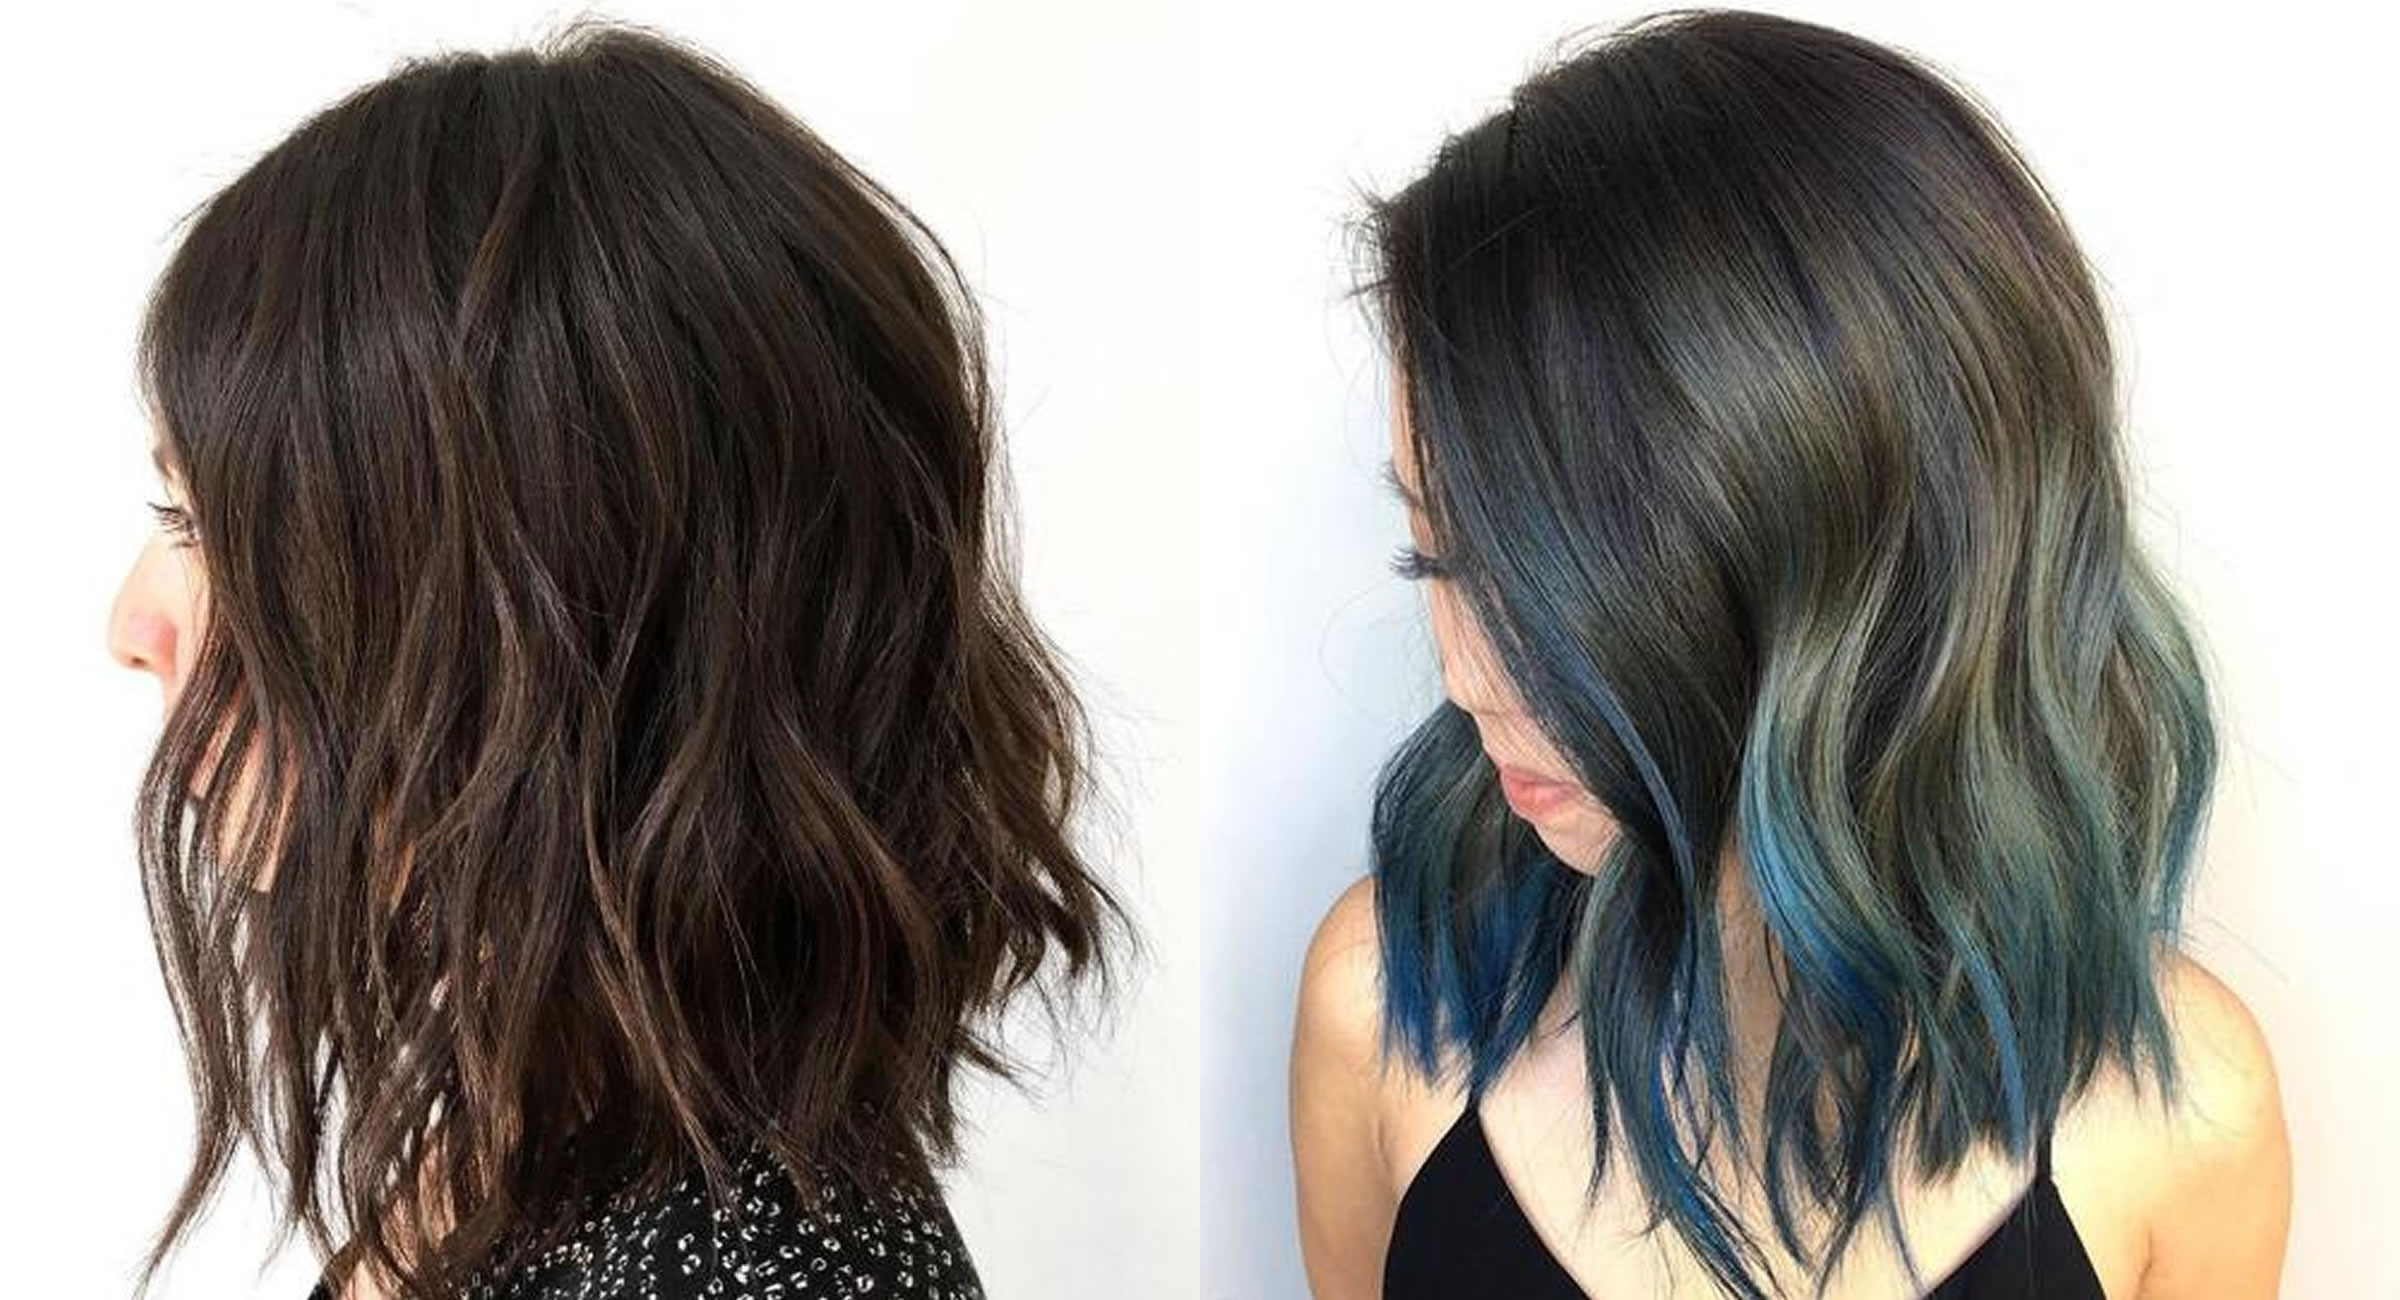 Blue Balayage Hair Color Wavy Long Bob Hairstyles – Hair Colors Regarding Well Known Curly Caramel Blonde Bob Hairstyles (View 11 of 20)